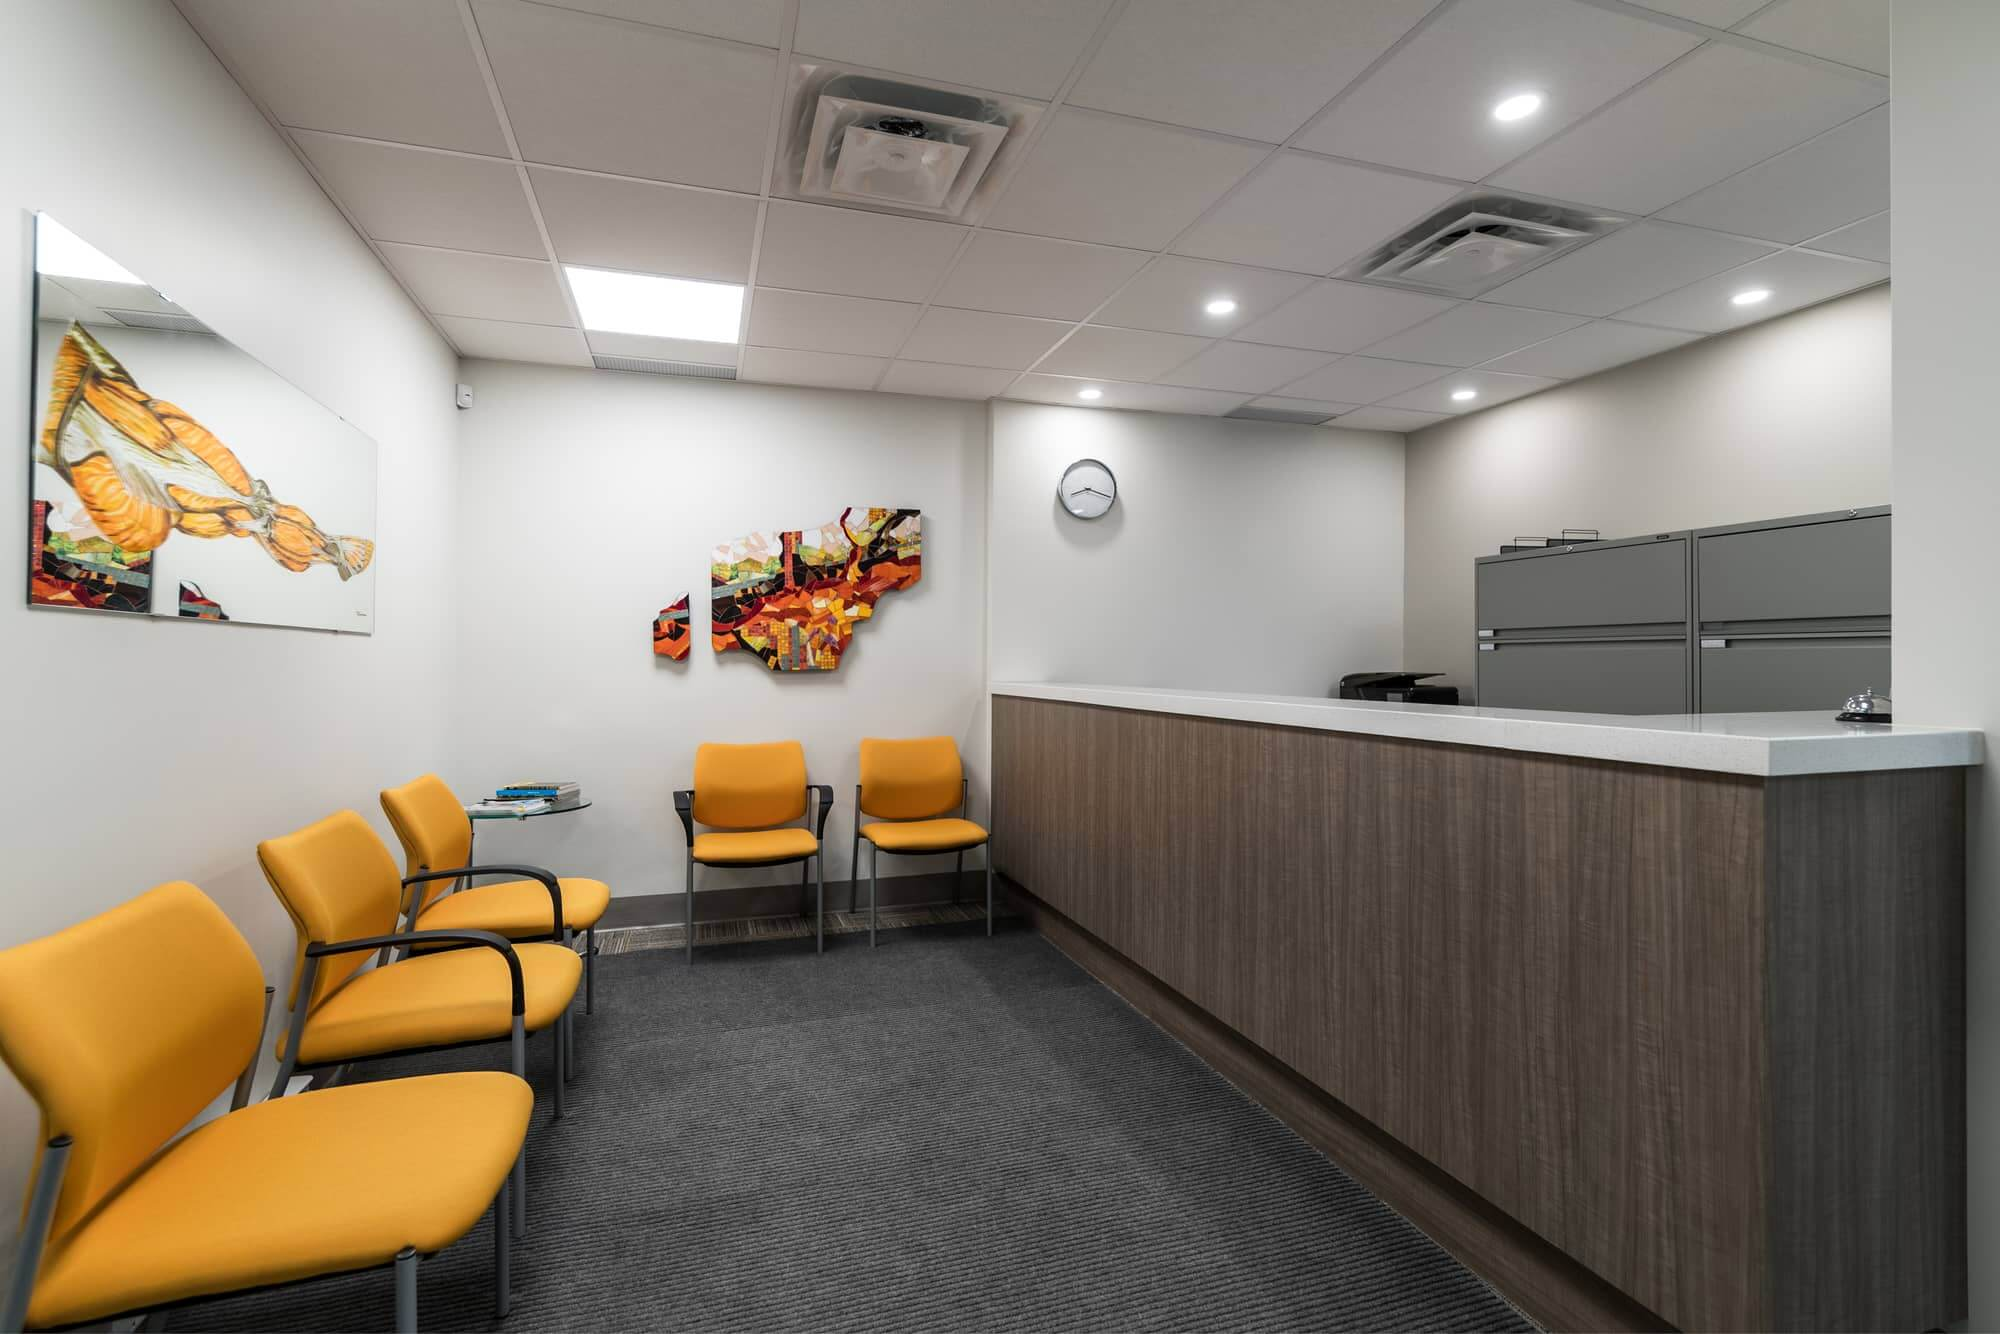 Renovated waiting room with yellow chairs - Stimula Physiotherapy Clinic